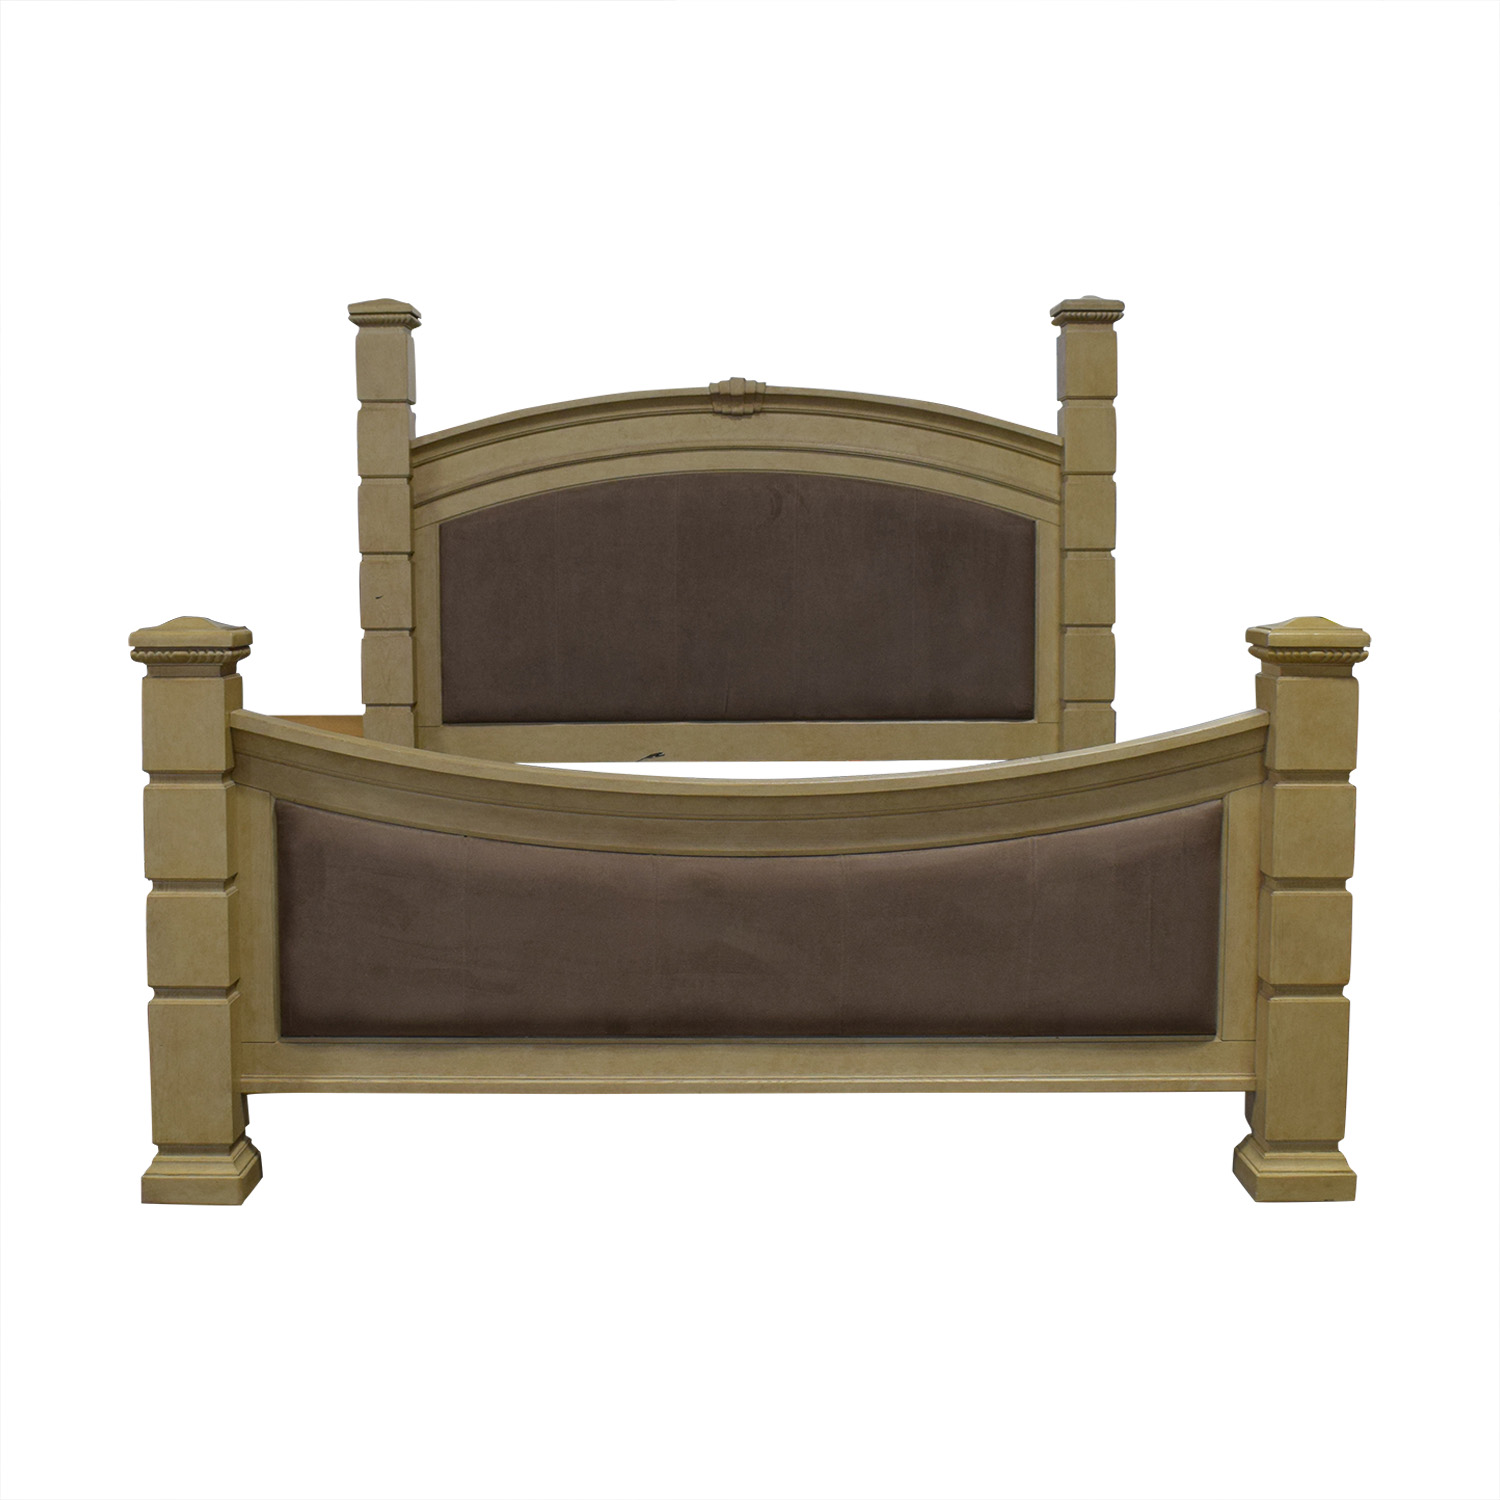 Rooms To Go Rooms To Go Tan and Beige King Bed Frame second hand